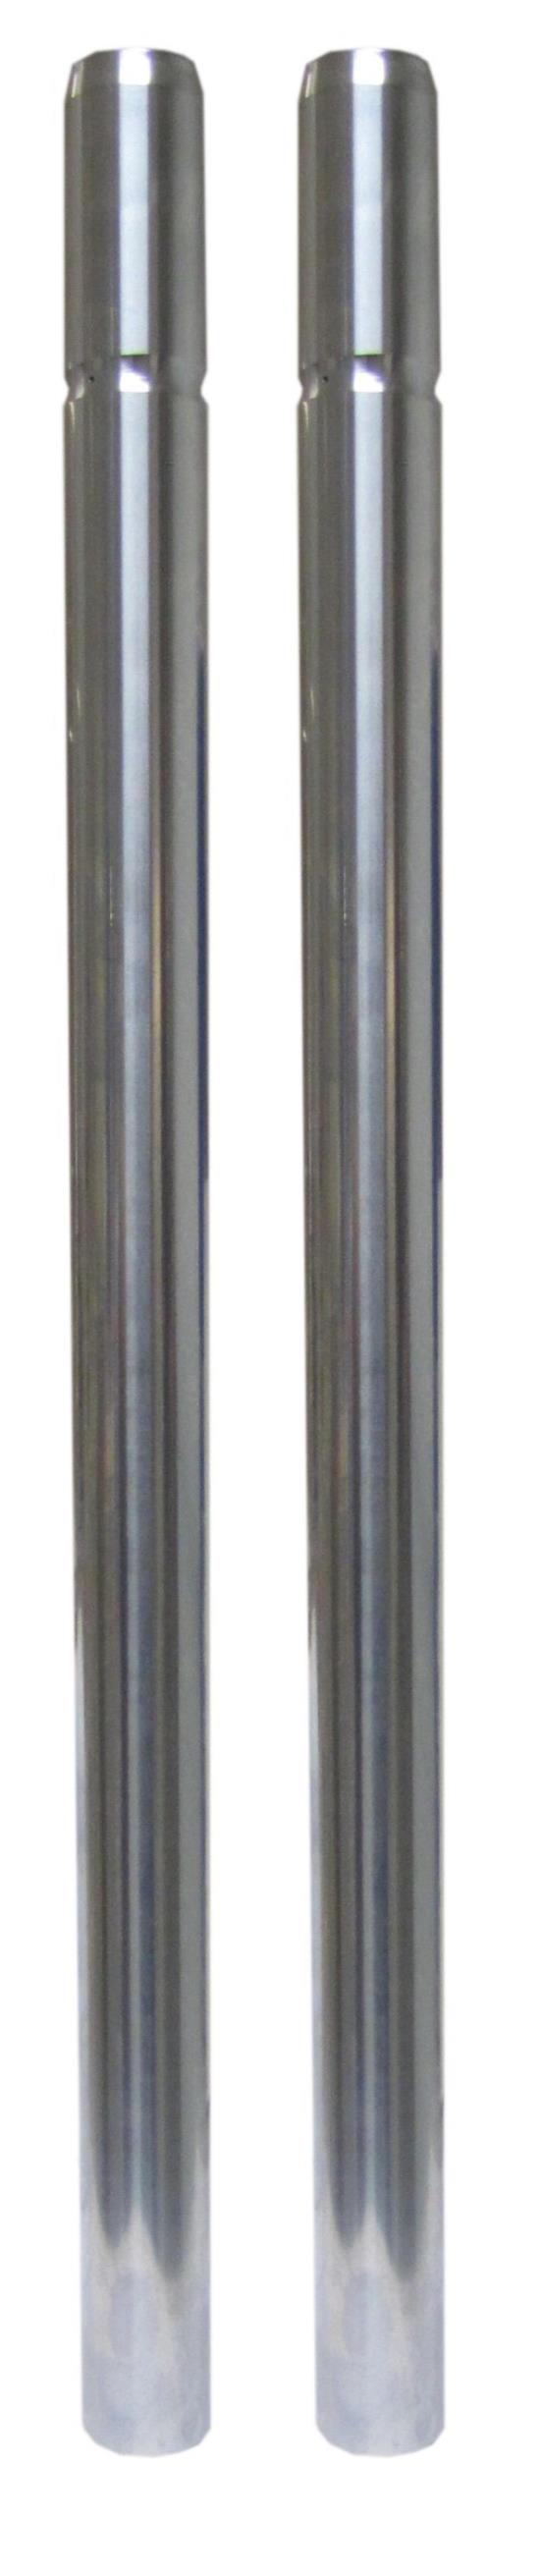 Picture of Front Fork Stanchions Only Honda CB750 SOHC 35mm (Pair)